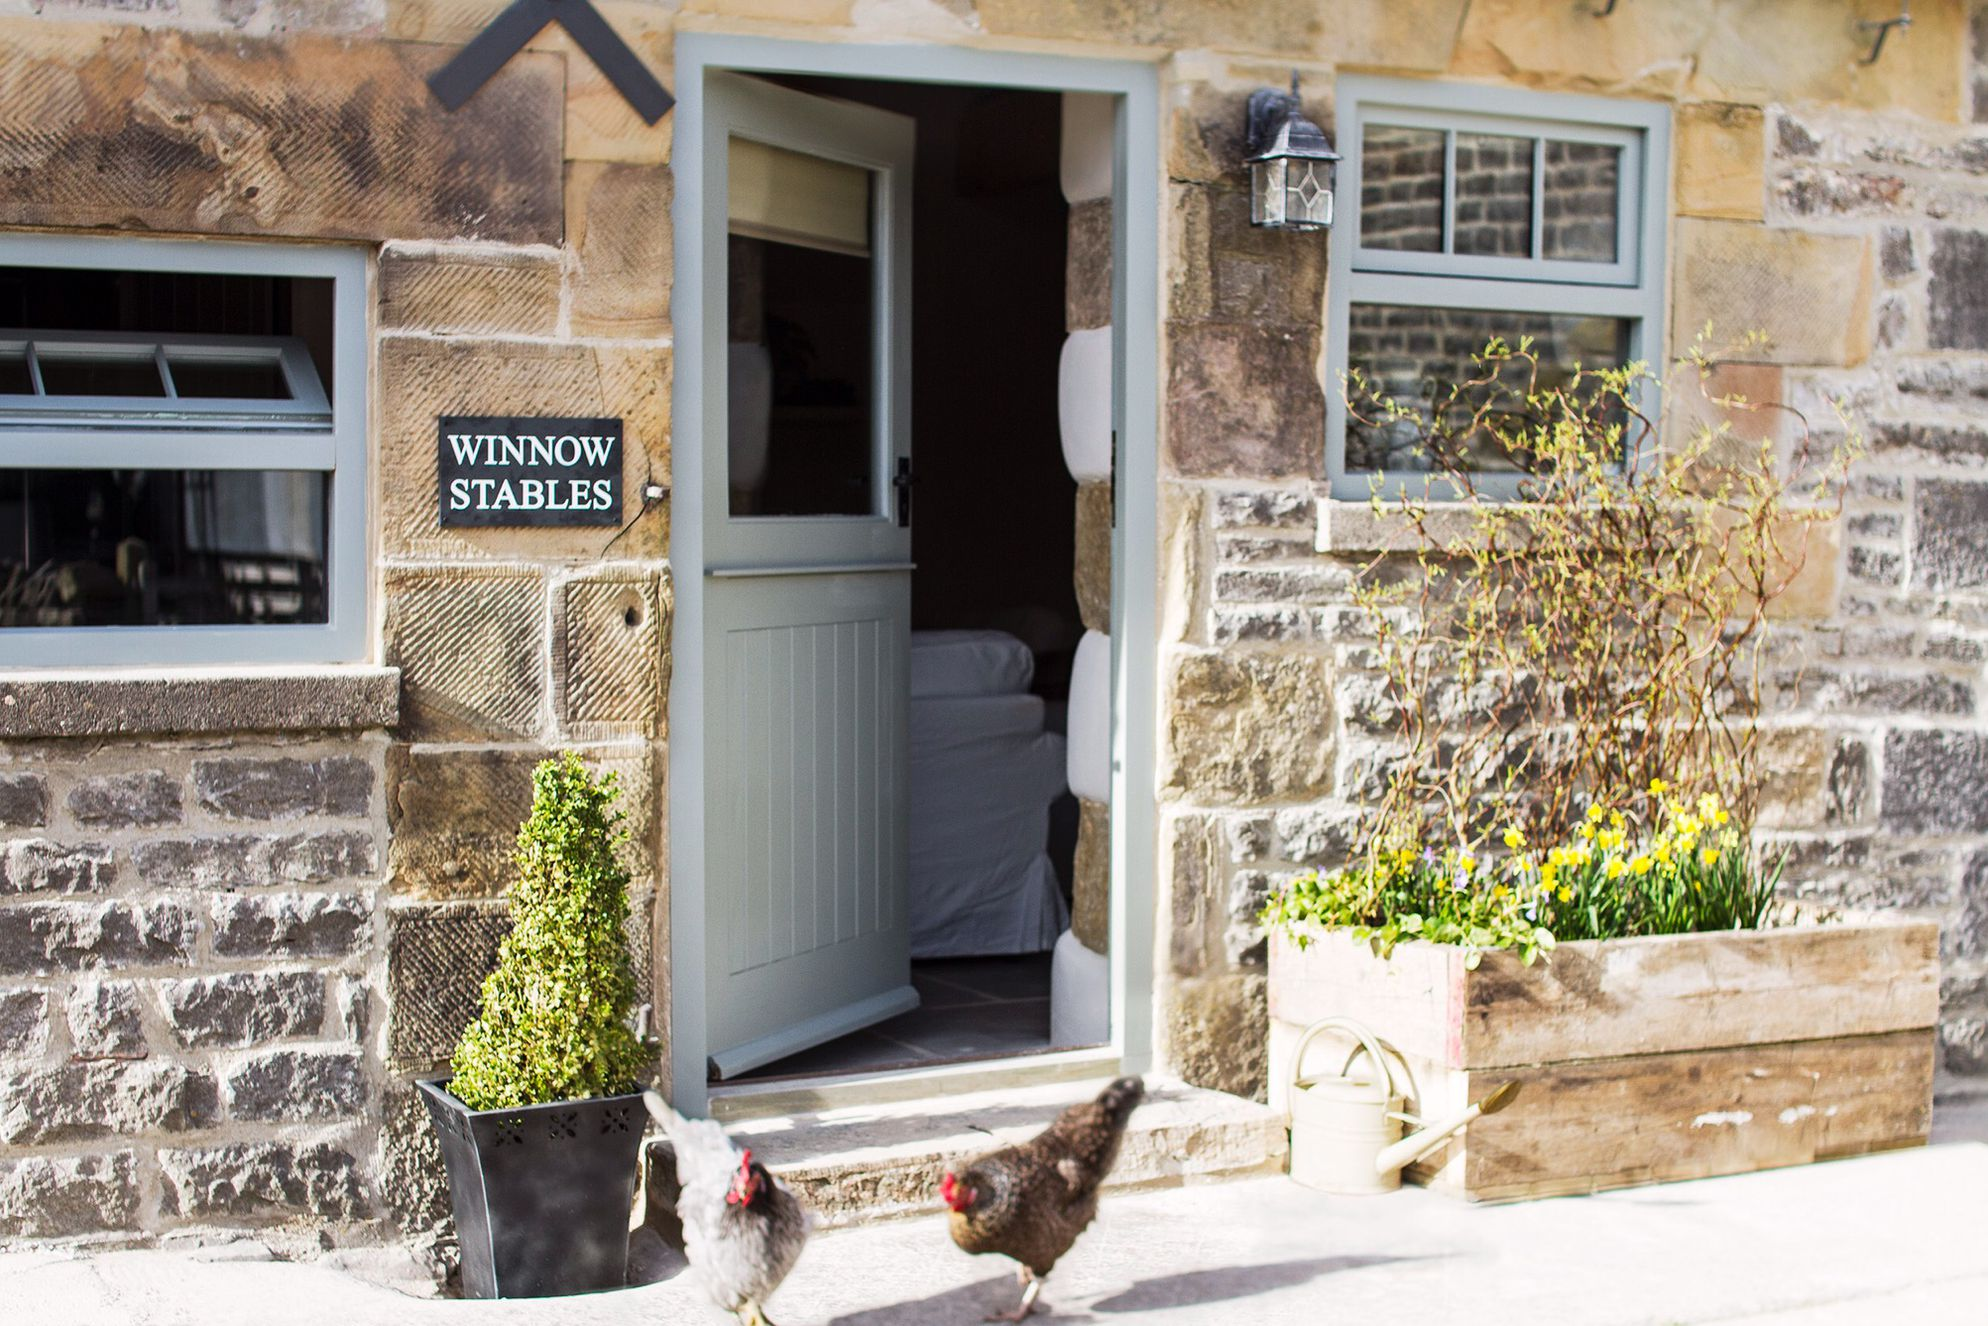 Exterior and entrance of Winnow Stables, Derbyshire